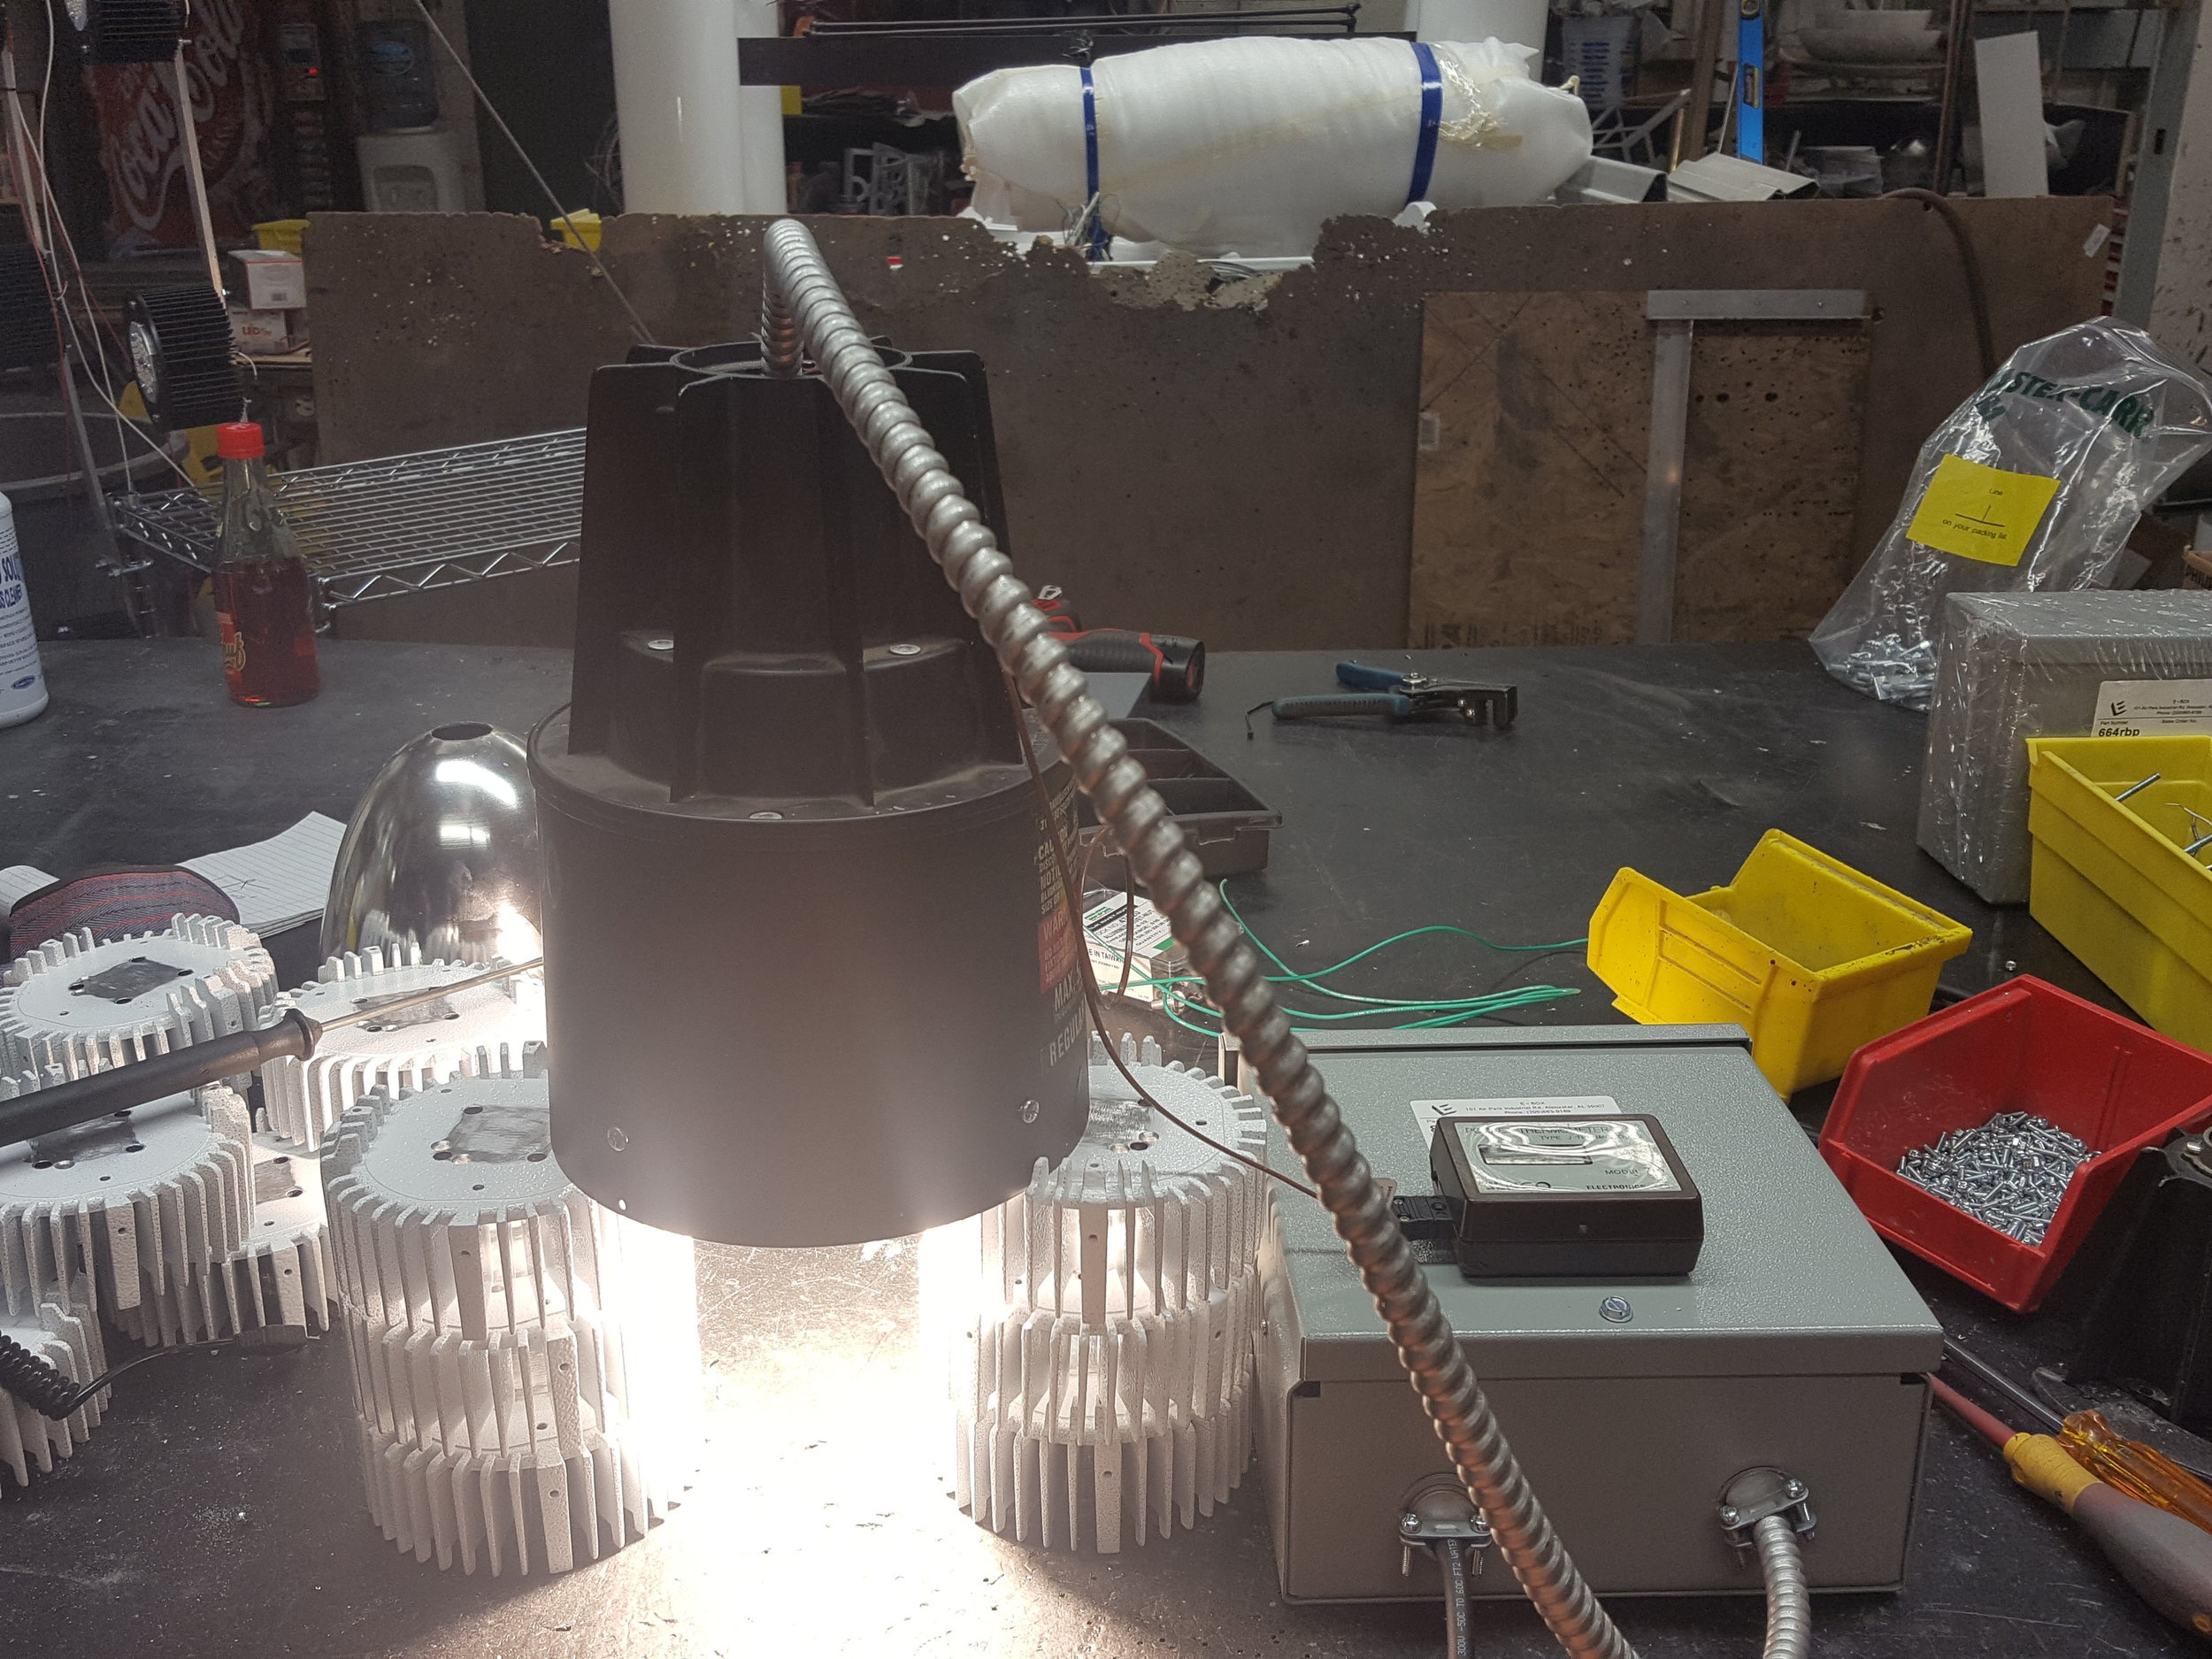 Led Energized for Heat Testing.